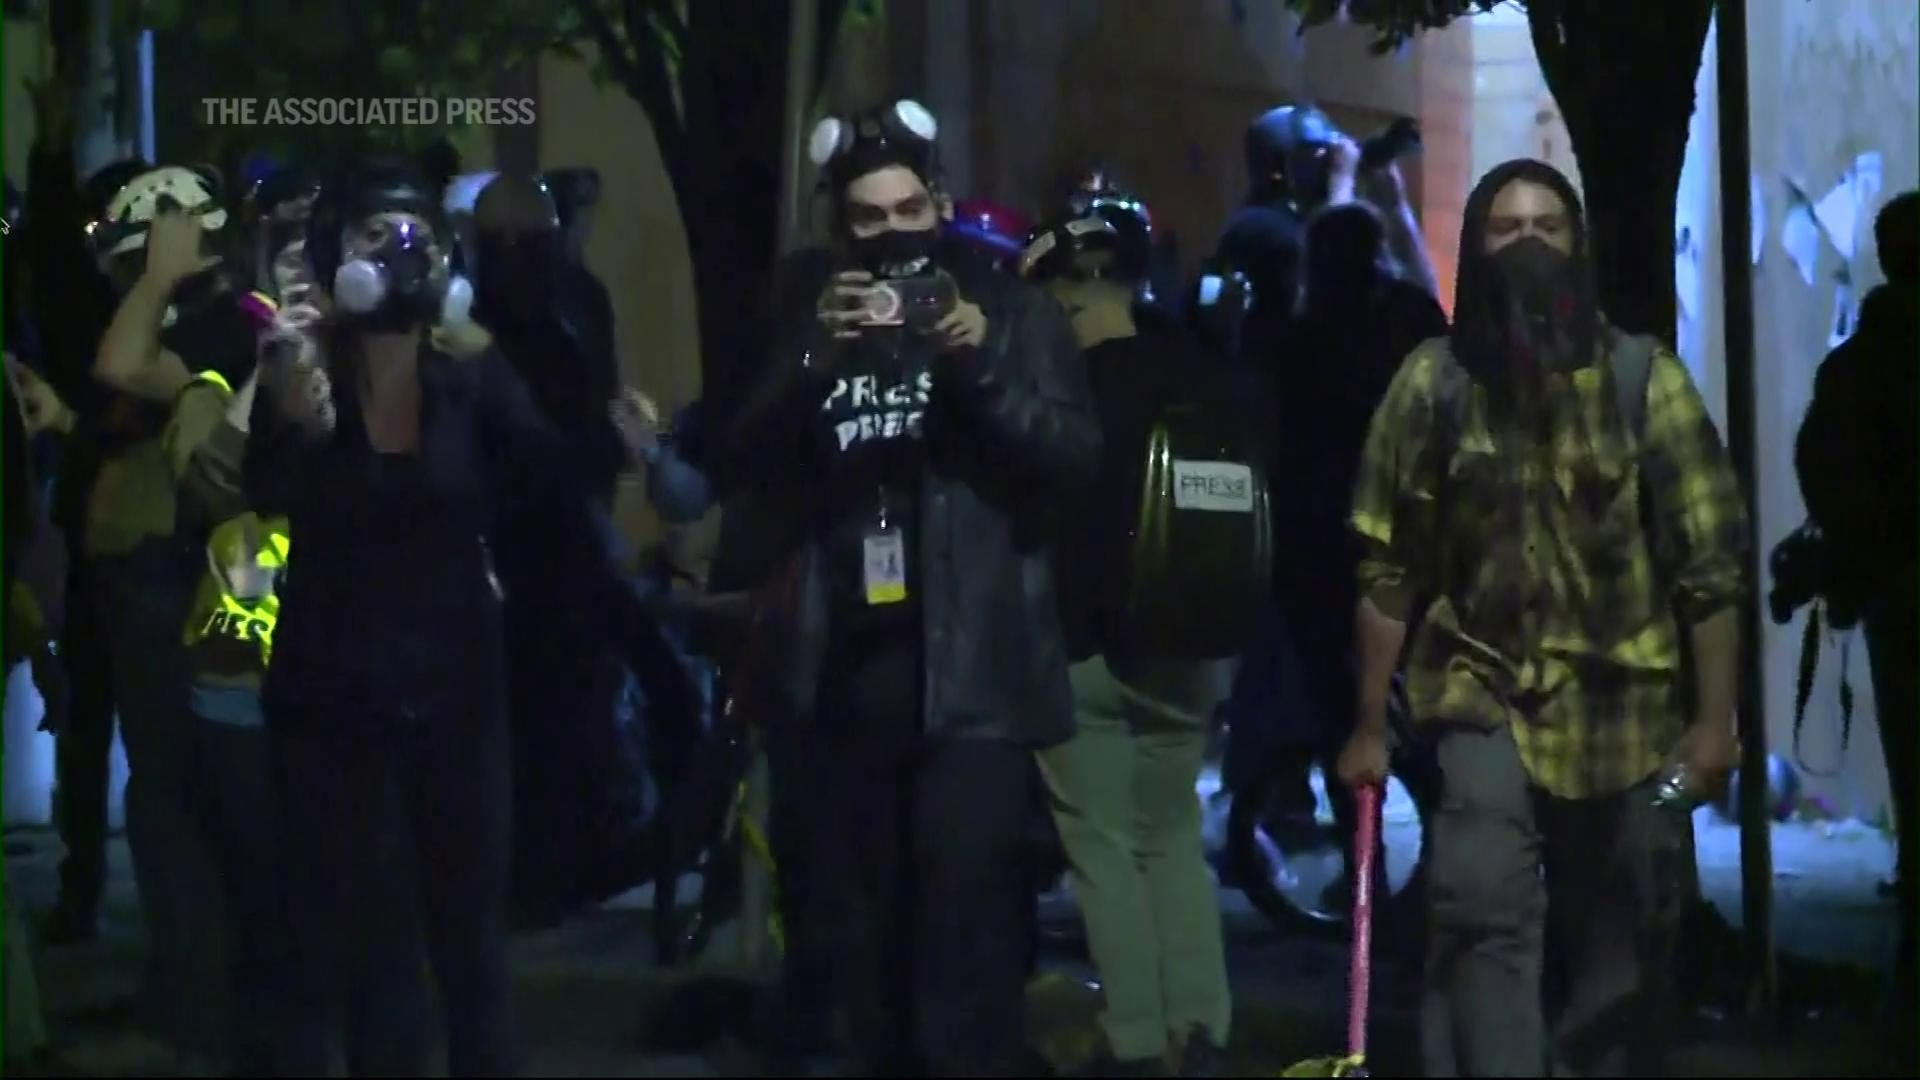 Portland, Oregon police declared an unlawful assembly outside a precinct on Thursday night and ordered protesters to leave. Earlier, the city's Mayor criticized the protests that have shaken Portland since George Floyd was killed. (Aug. 7)Thumbnail